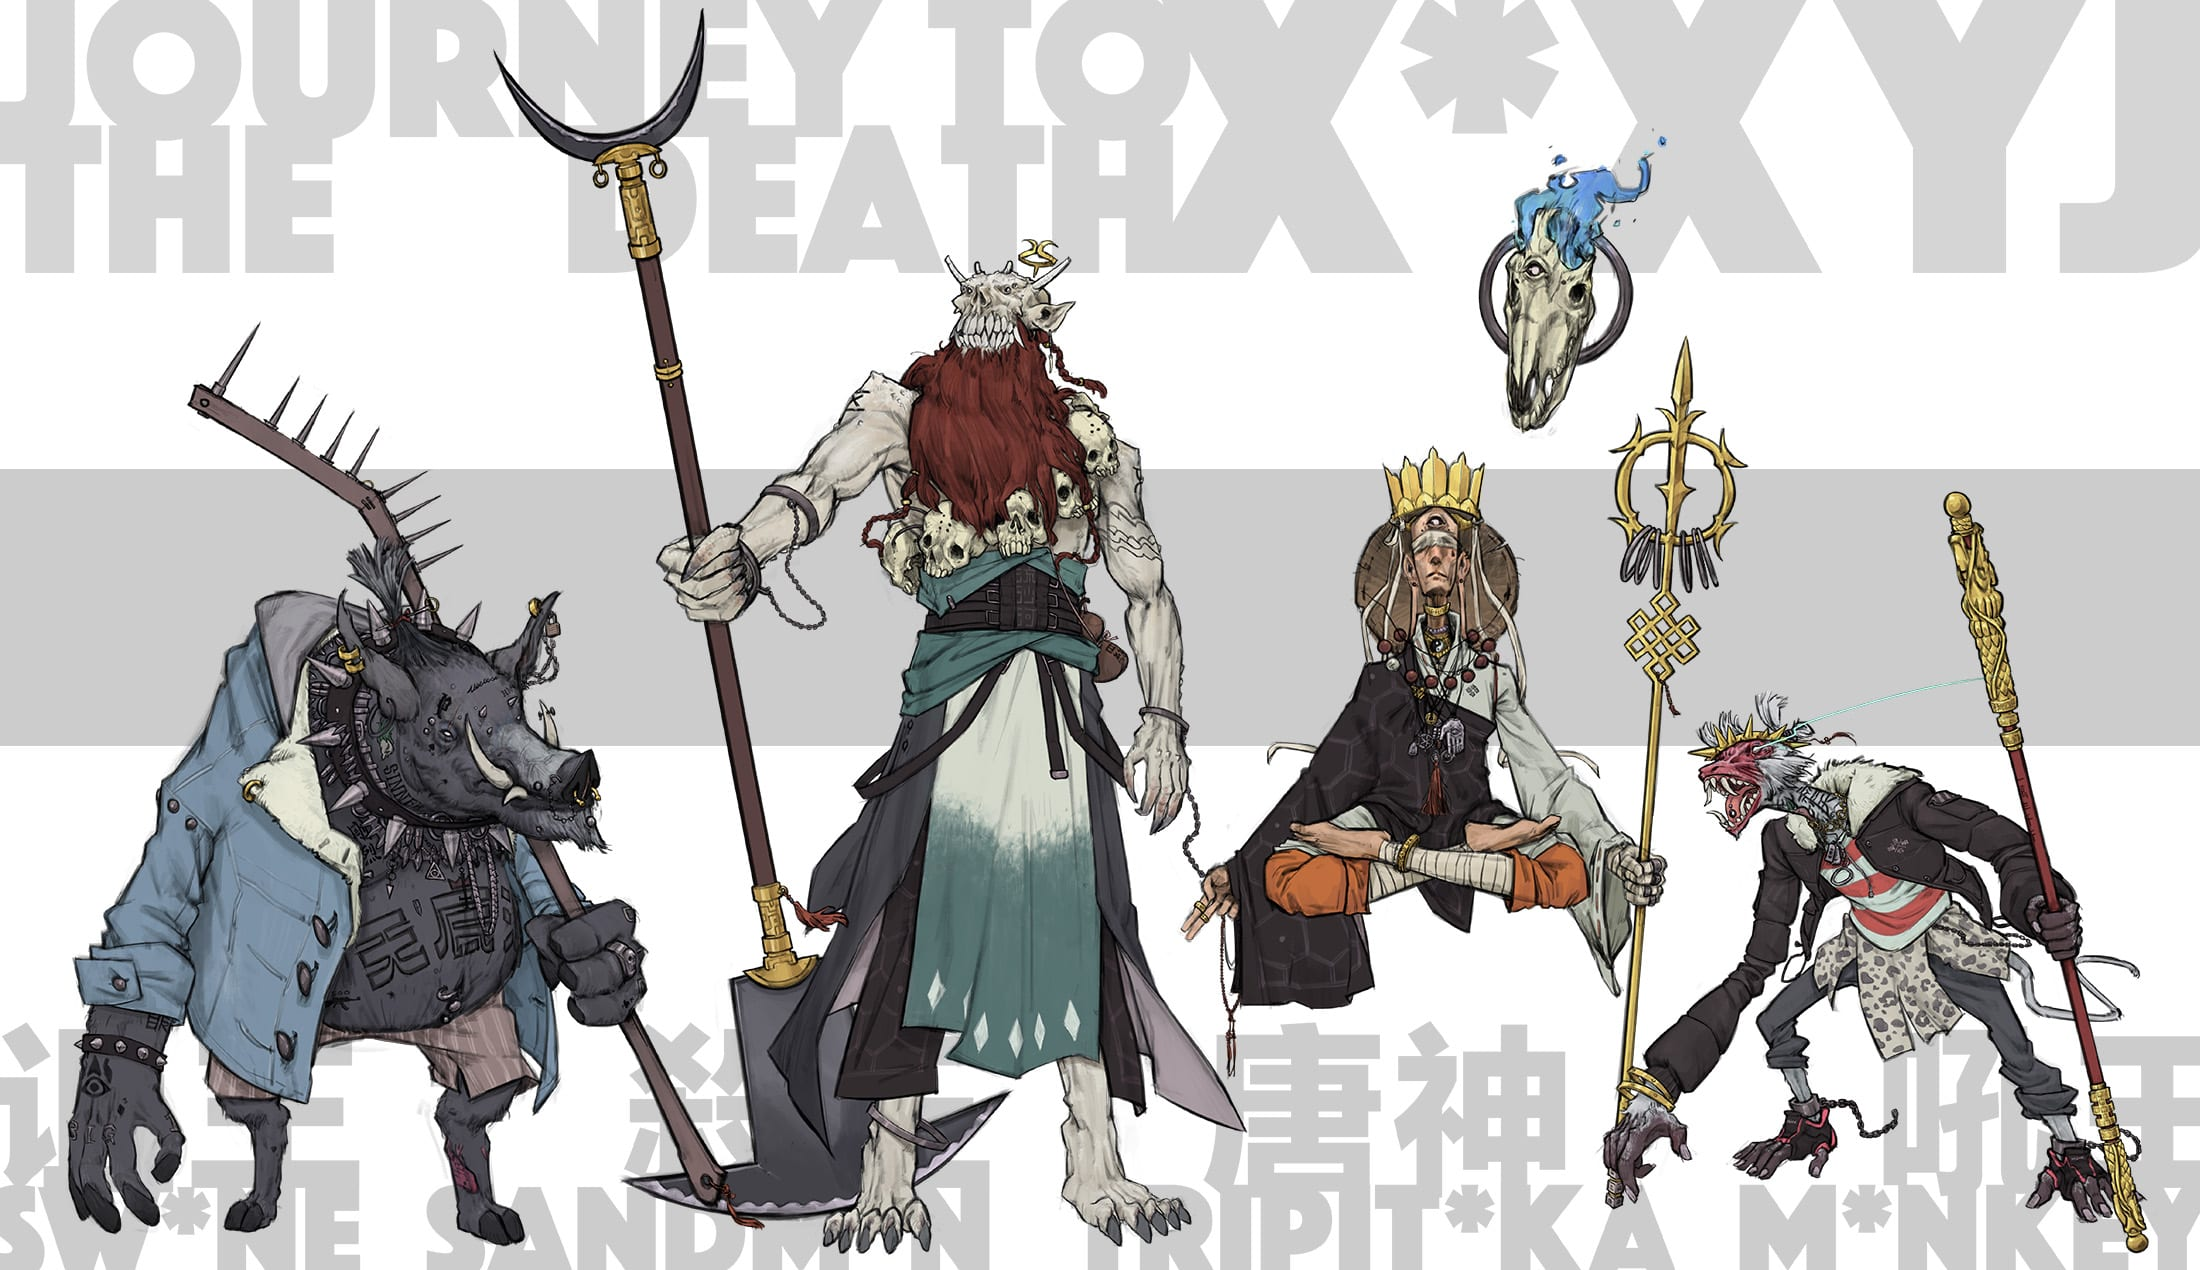 character design by ew.